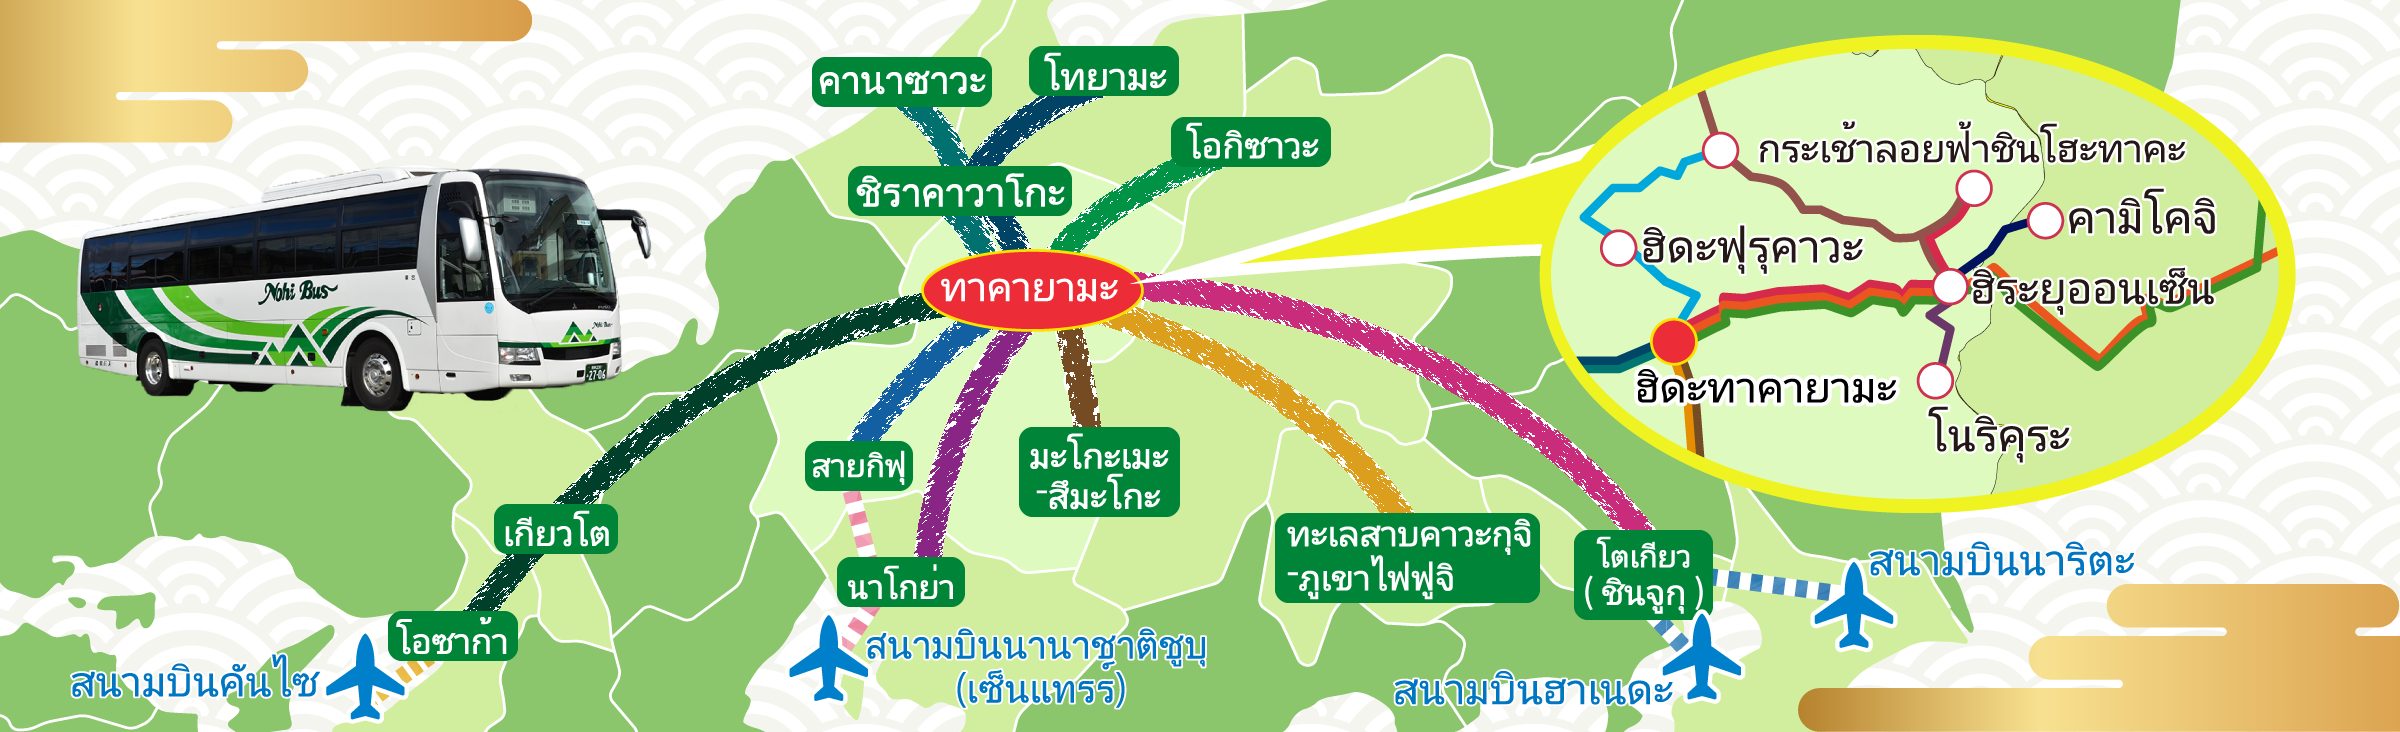 header_map_thai_hida